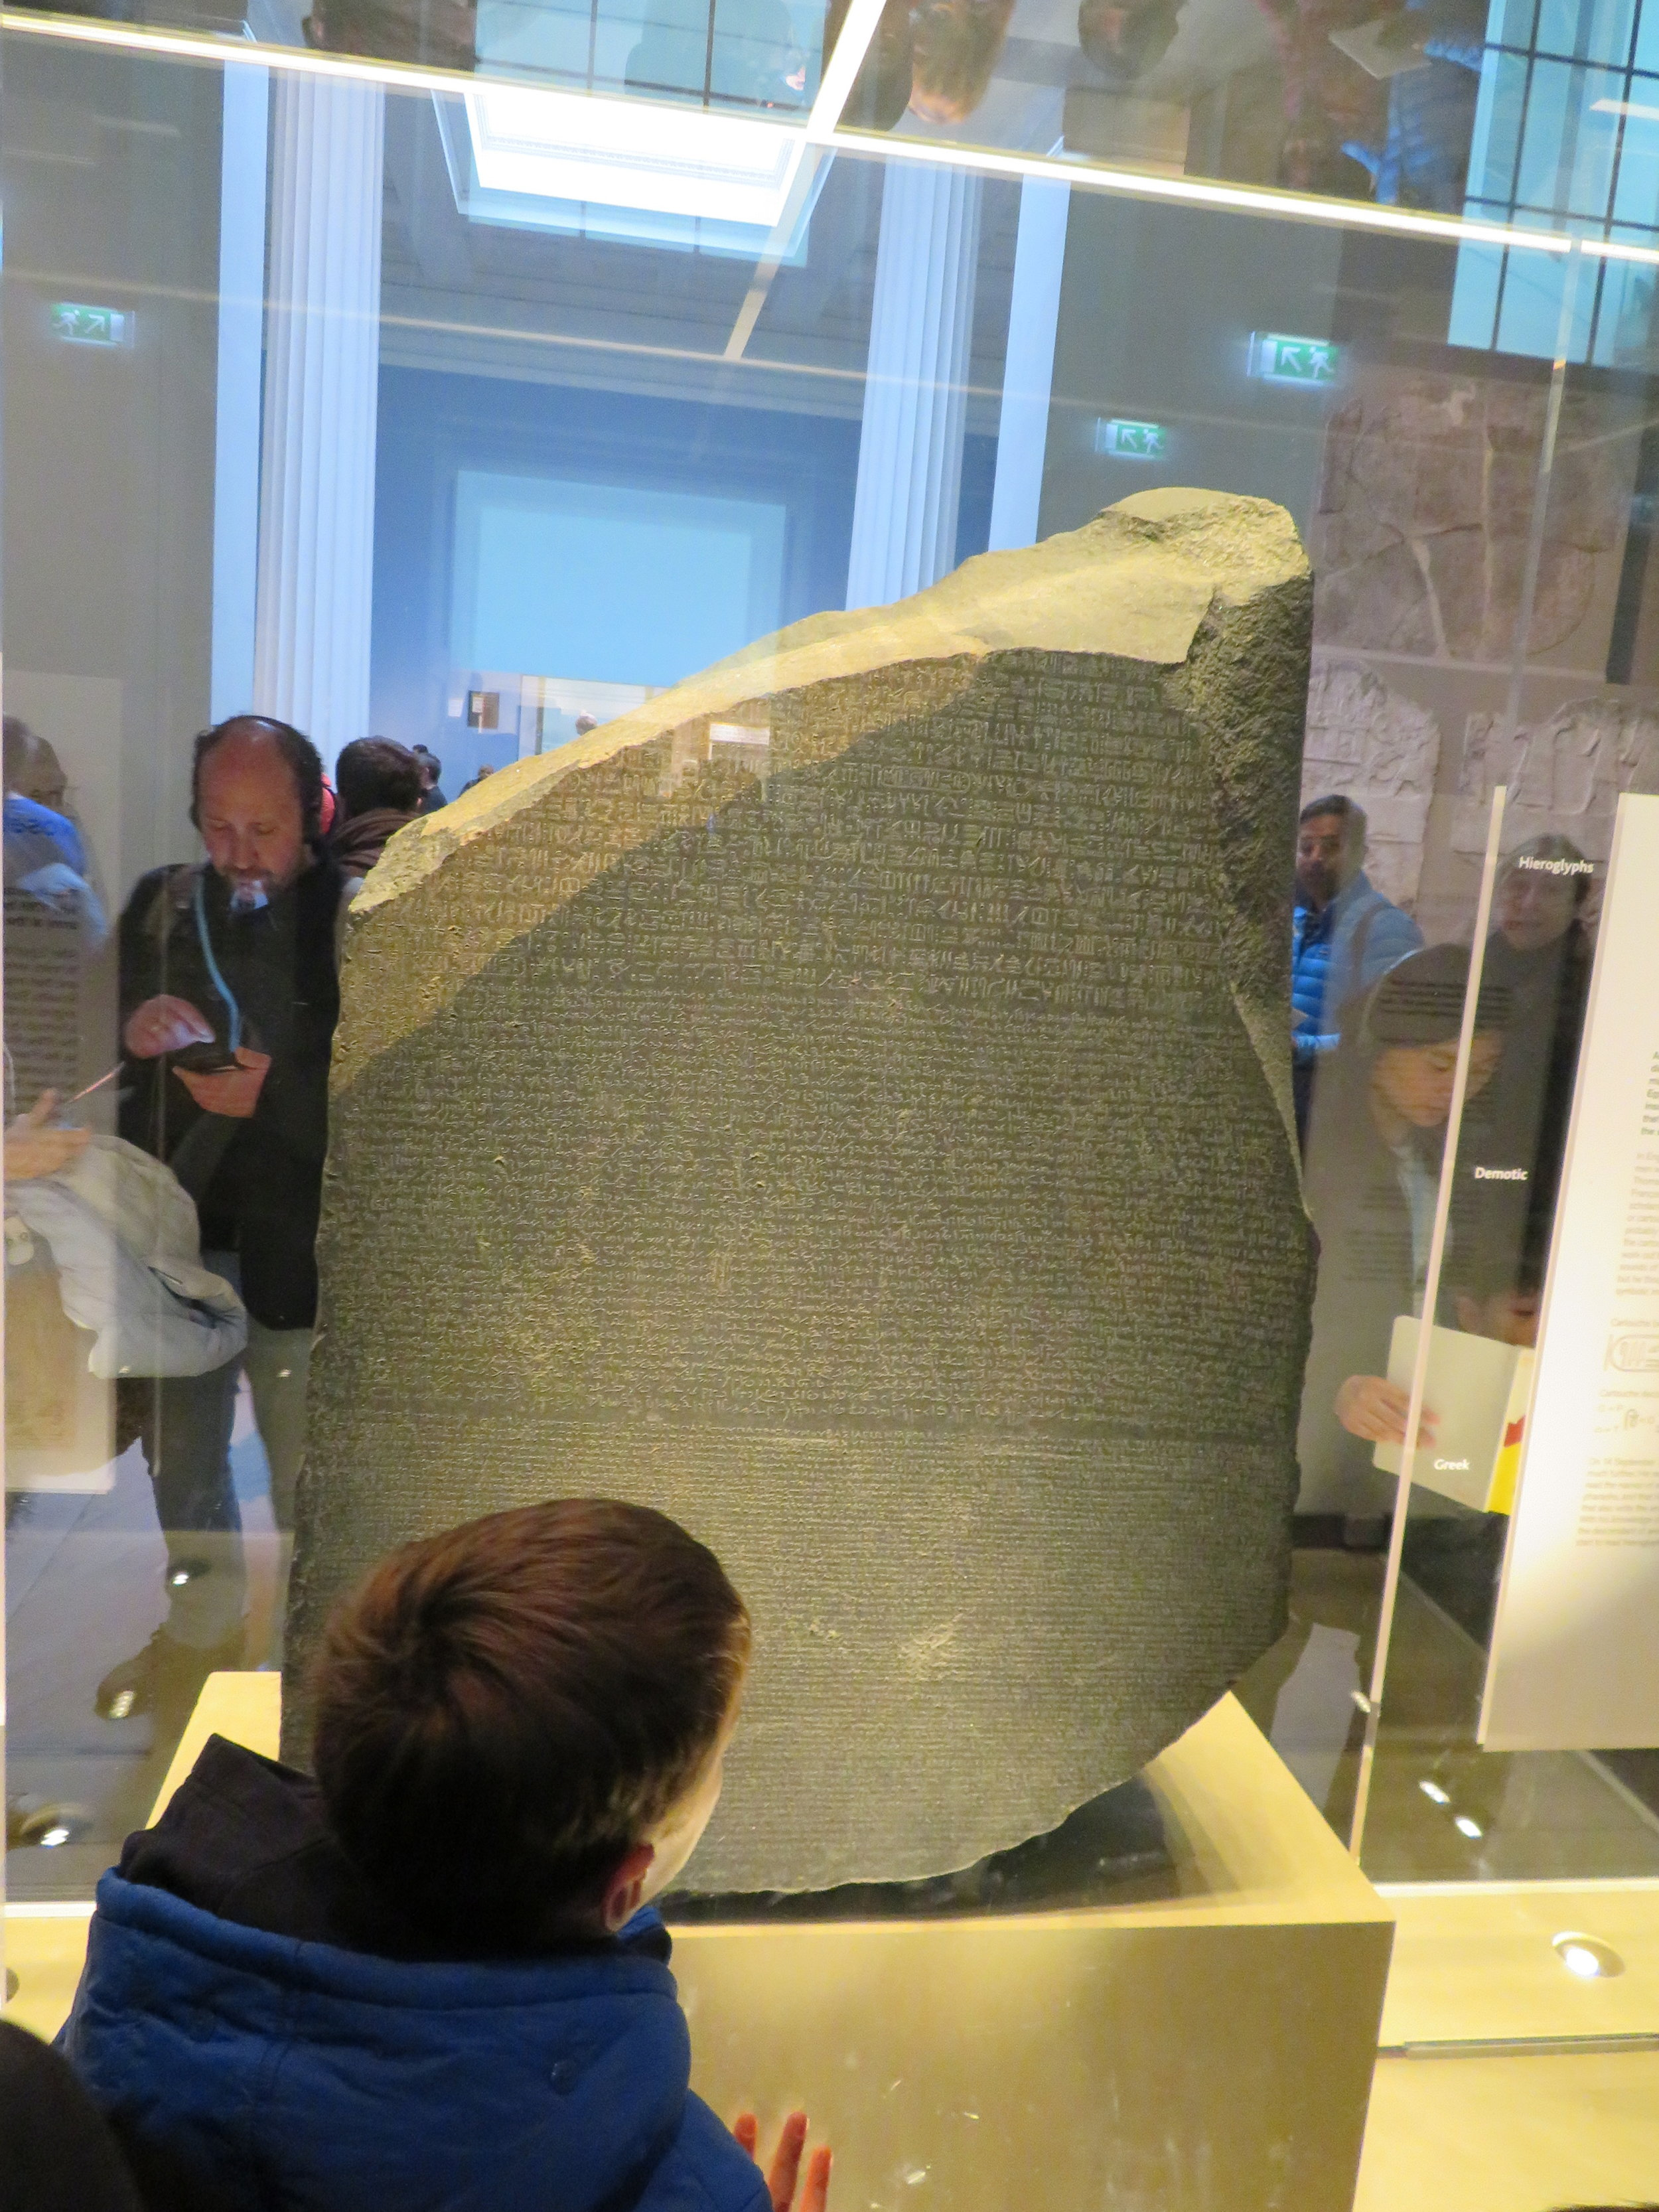 The famed Rosetta Stone elicited awe from young and old.